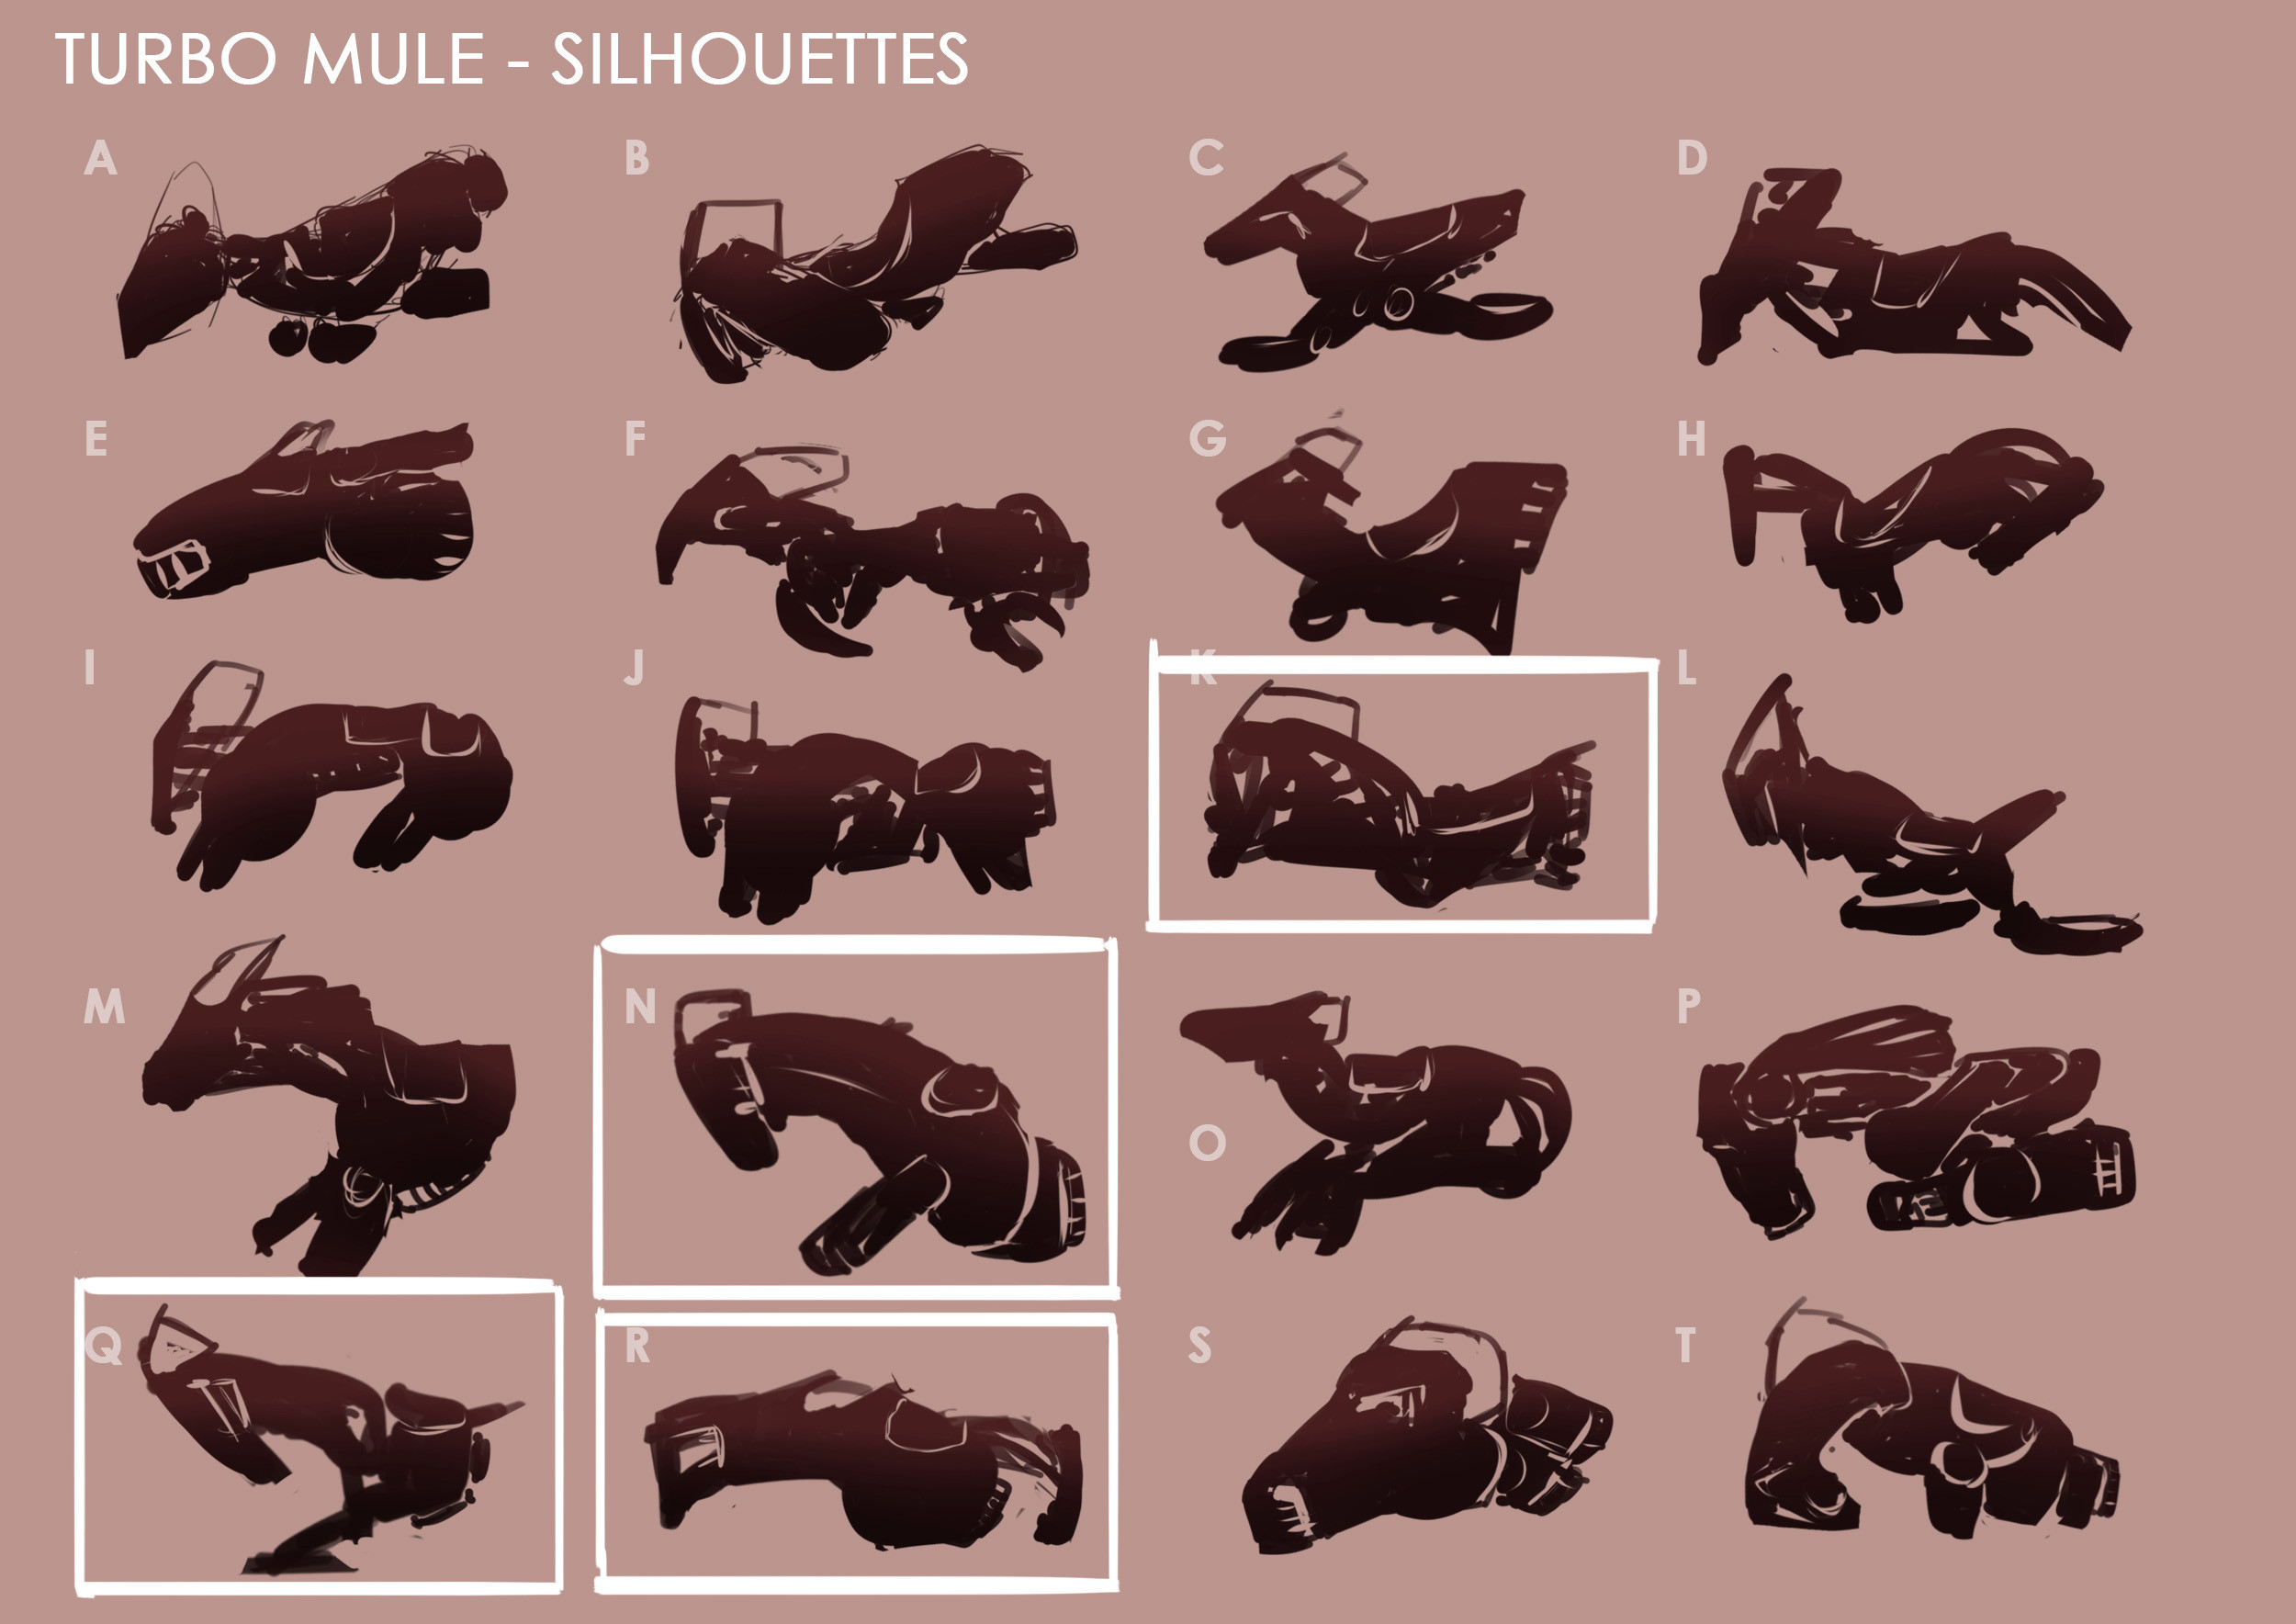 Silhouette exploration based on jumping/running horse shape